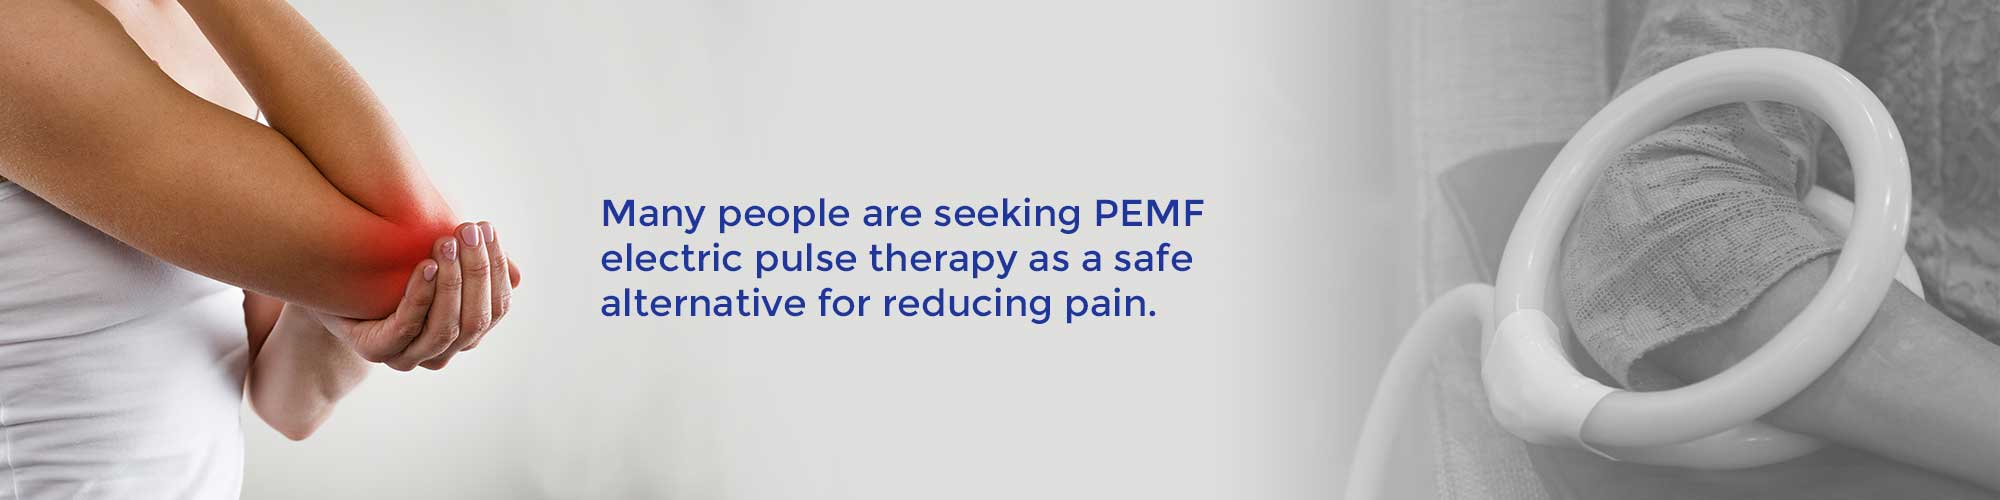 Many people are seeking PEMF electric pulse therapy as a safe alternative for reducing pain.